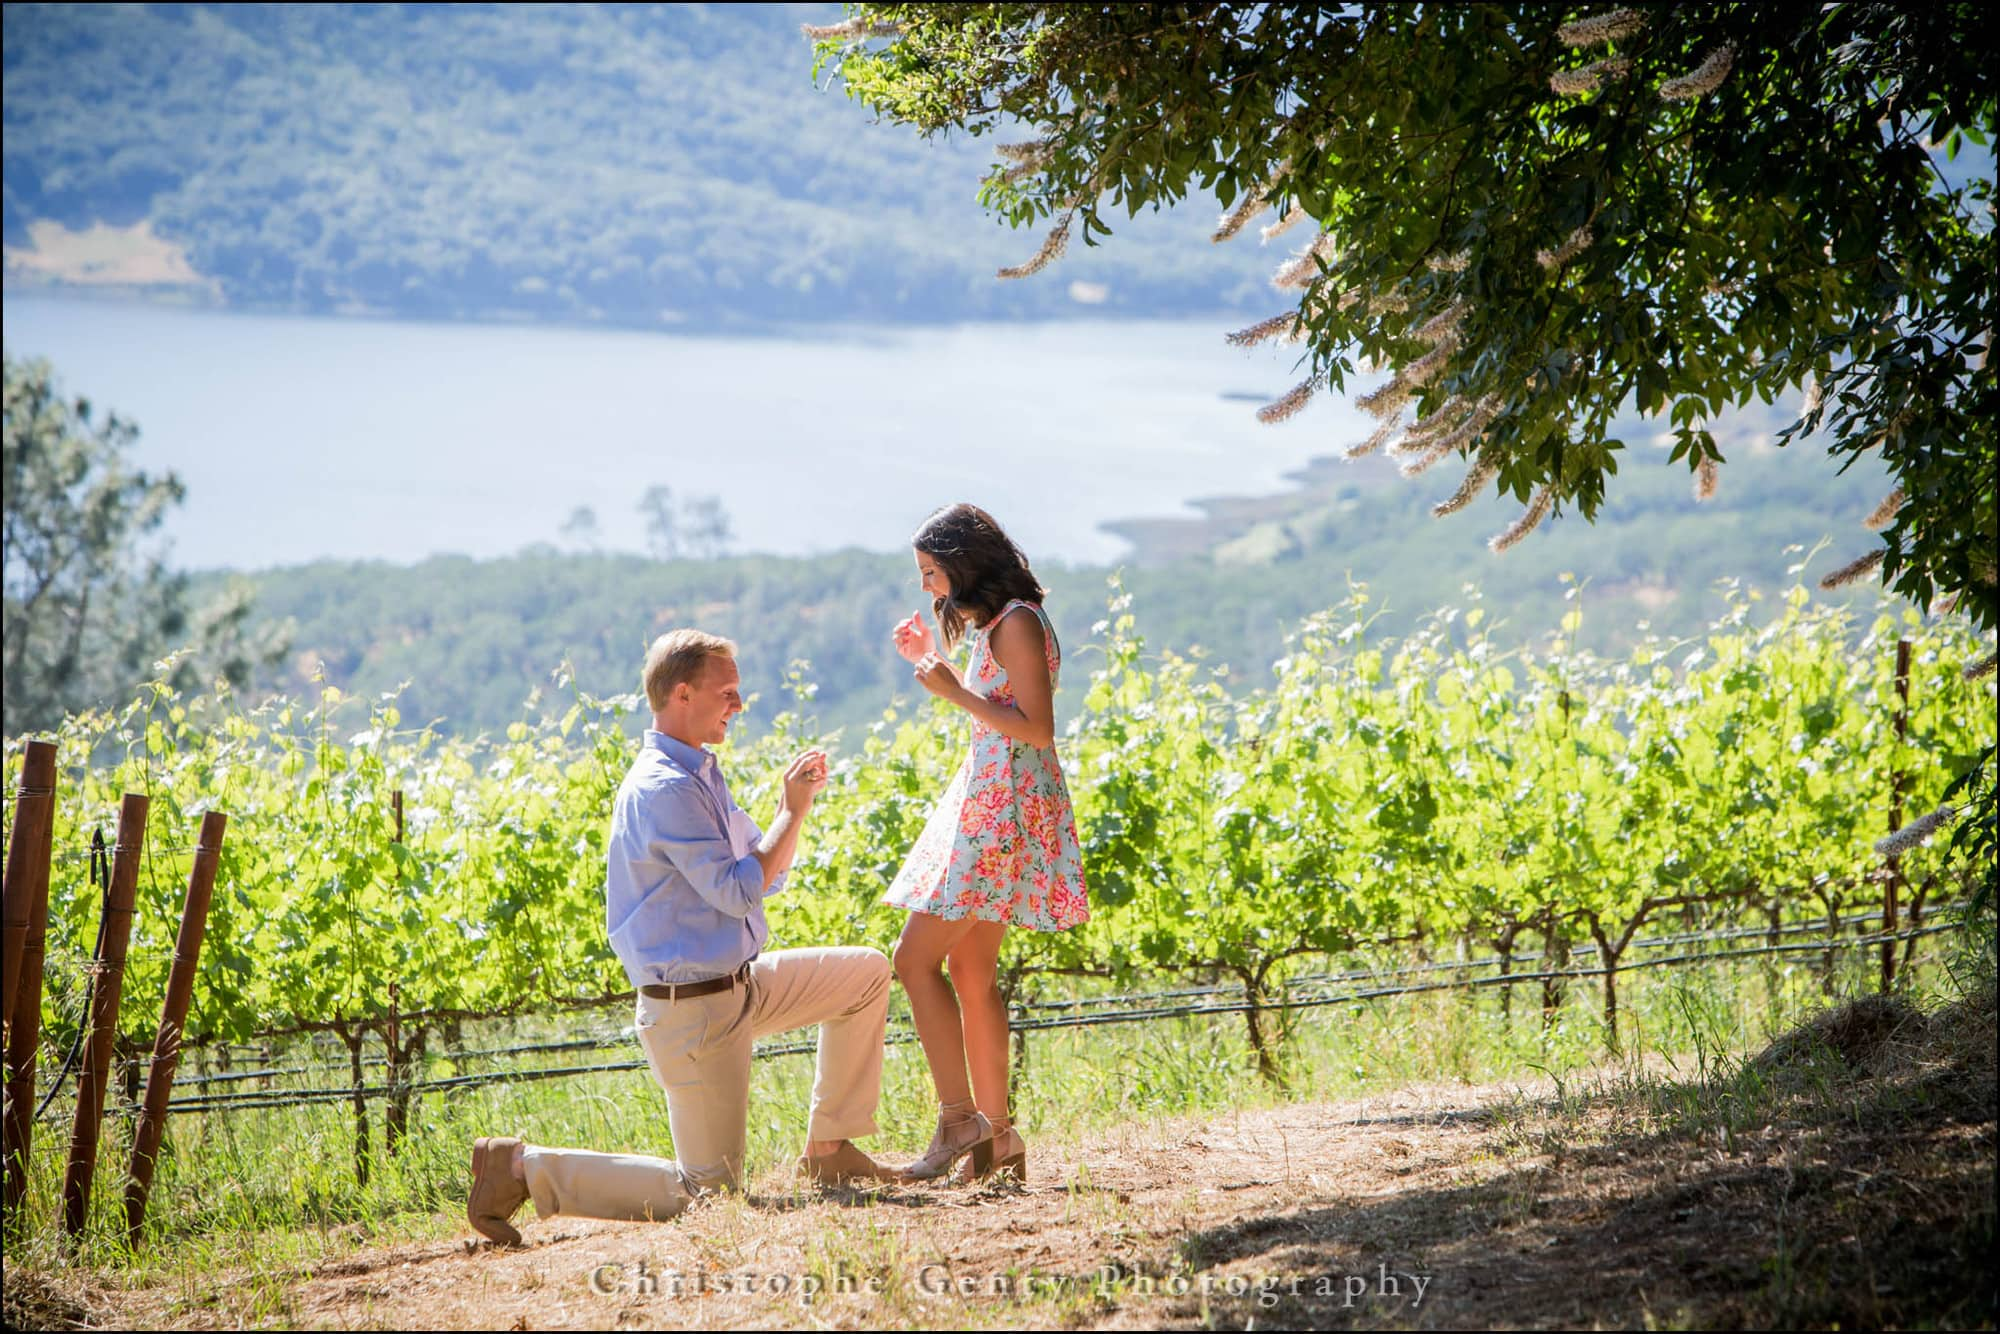 Marriage Proposal Photography At Jacuzzi Family Vineyards In Sonoma Ca